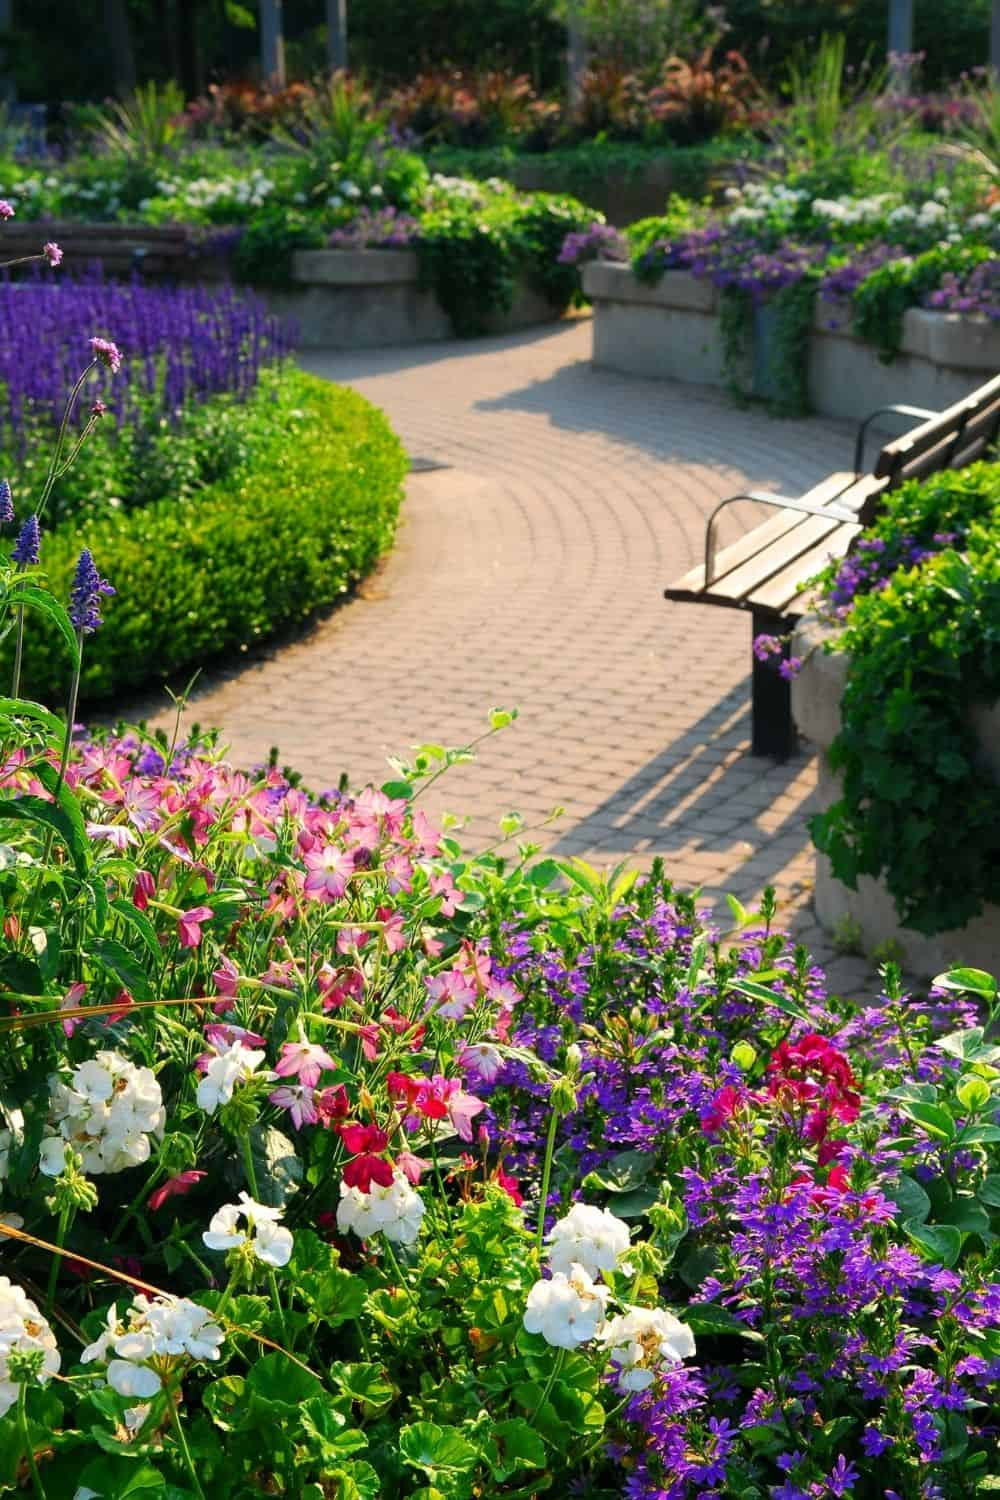 A beautiful example of landscaping with small shrubs